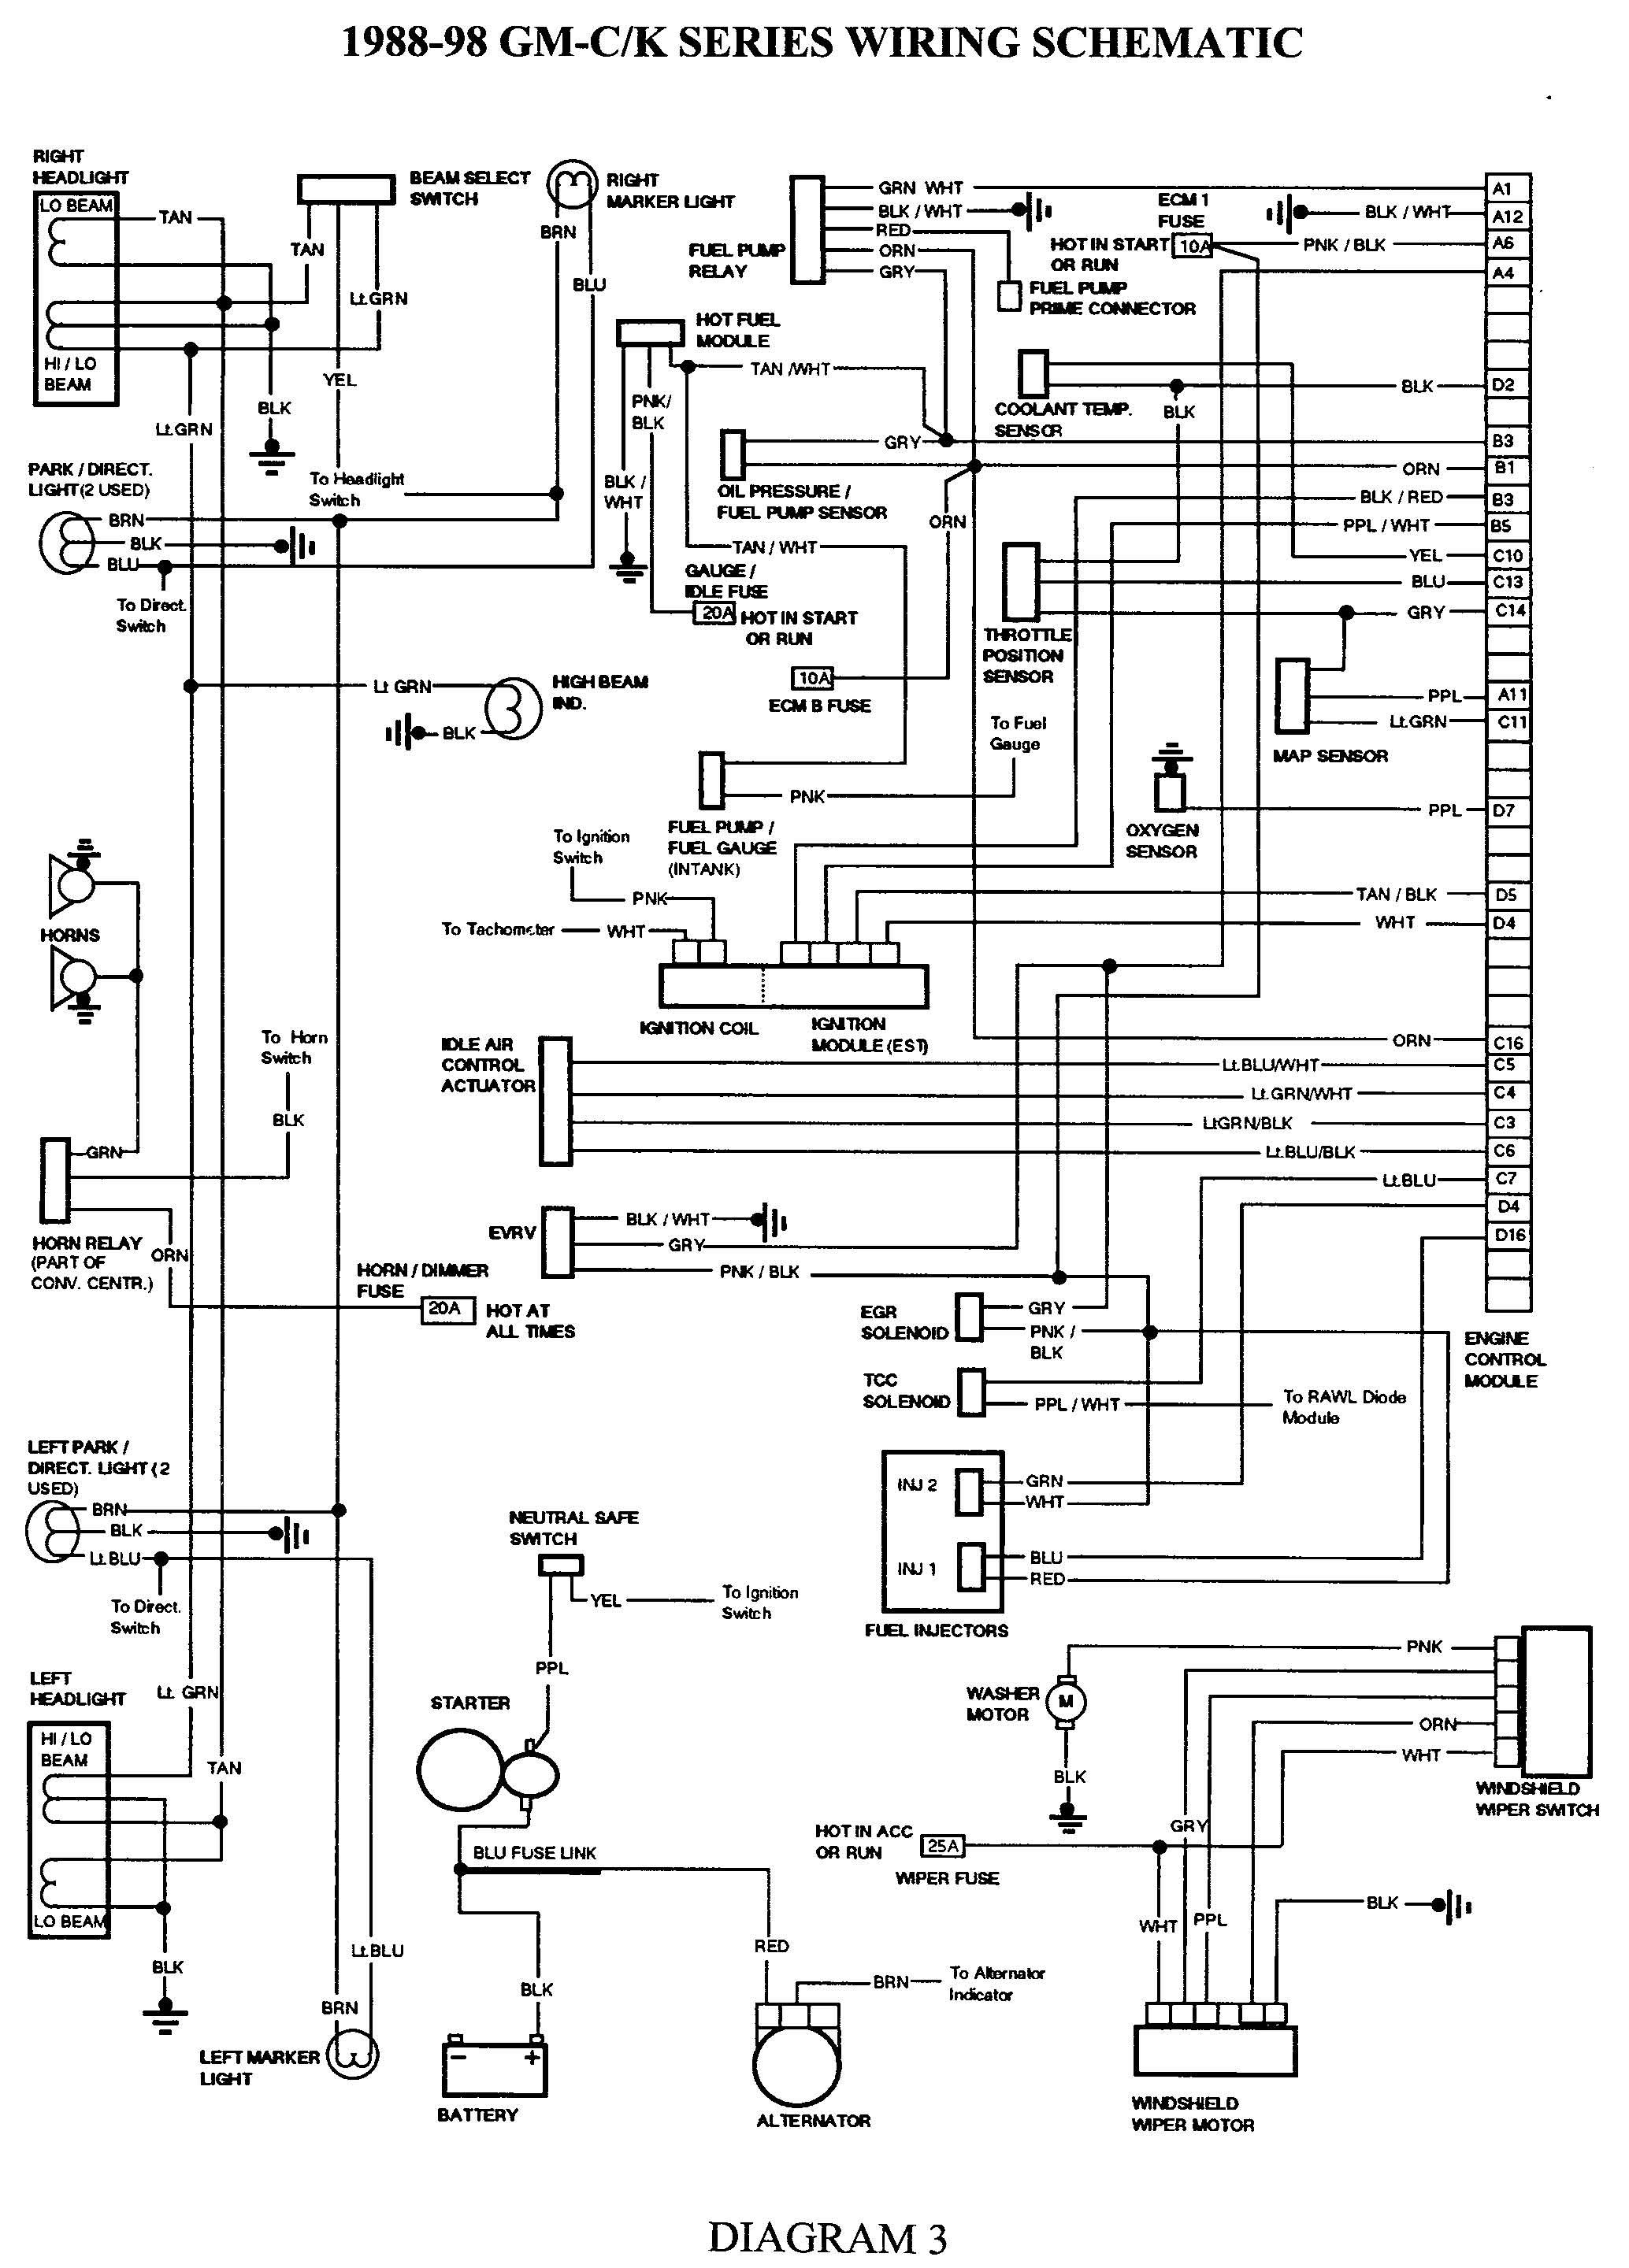 1994 Chevy Silverado Wiring Diagram - Eve.schullieder.de • on chevy ecm troubleshooting, chevy clutch diagram, chevy horn diagram, chevy ecm fuse location, chevy ecm repair, chevy ignition diagram, chevy ecm flow diagram, chevy lifters diagram, chevy transmission diagram, chevy engine diagram, chevy fuel system diagram, chevy fuel injection diagram, chevy control module diagram, chevy ecm distributor,